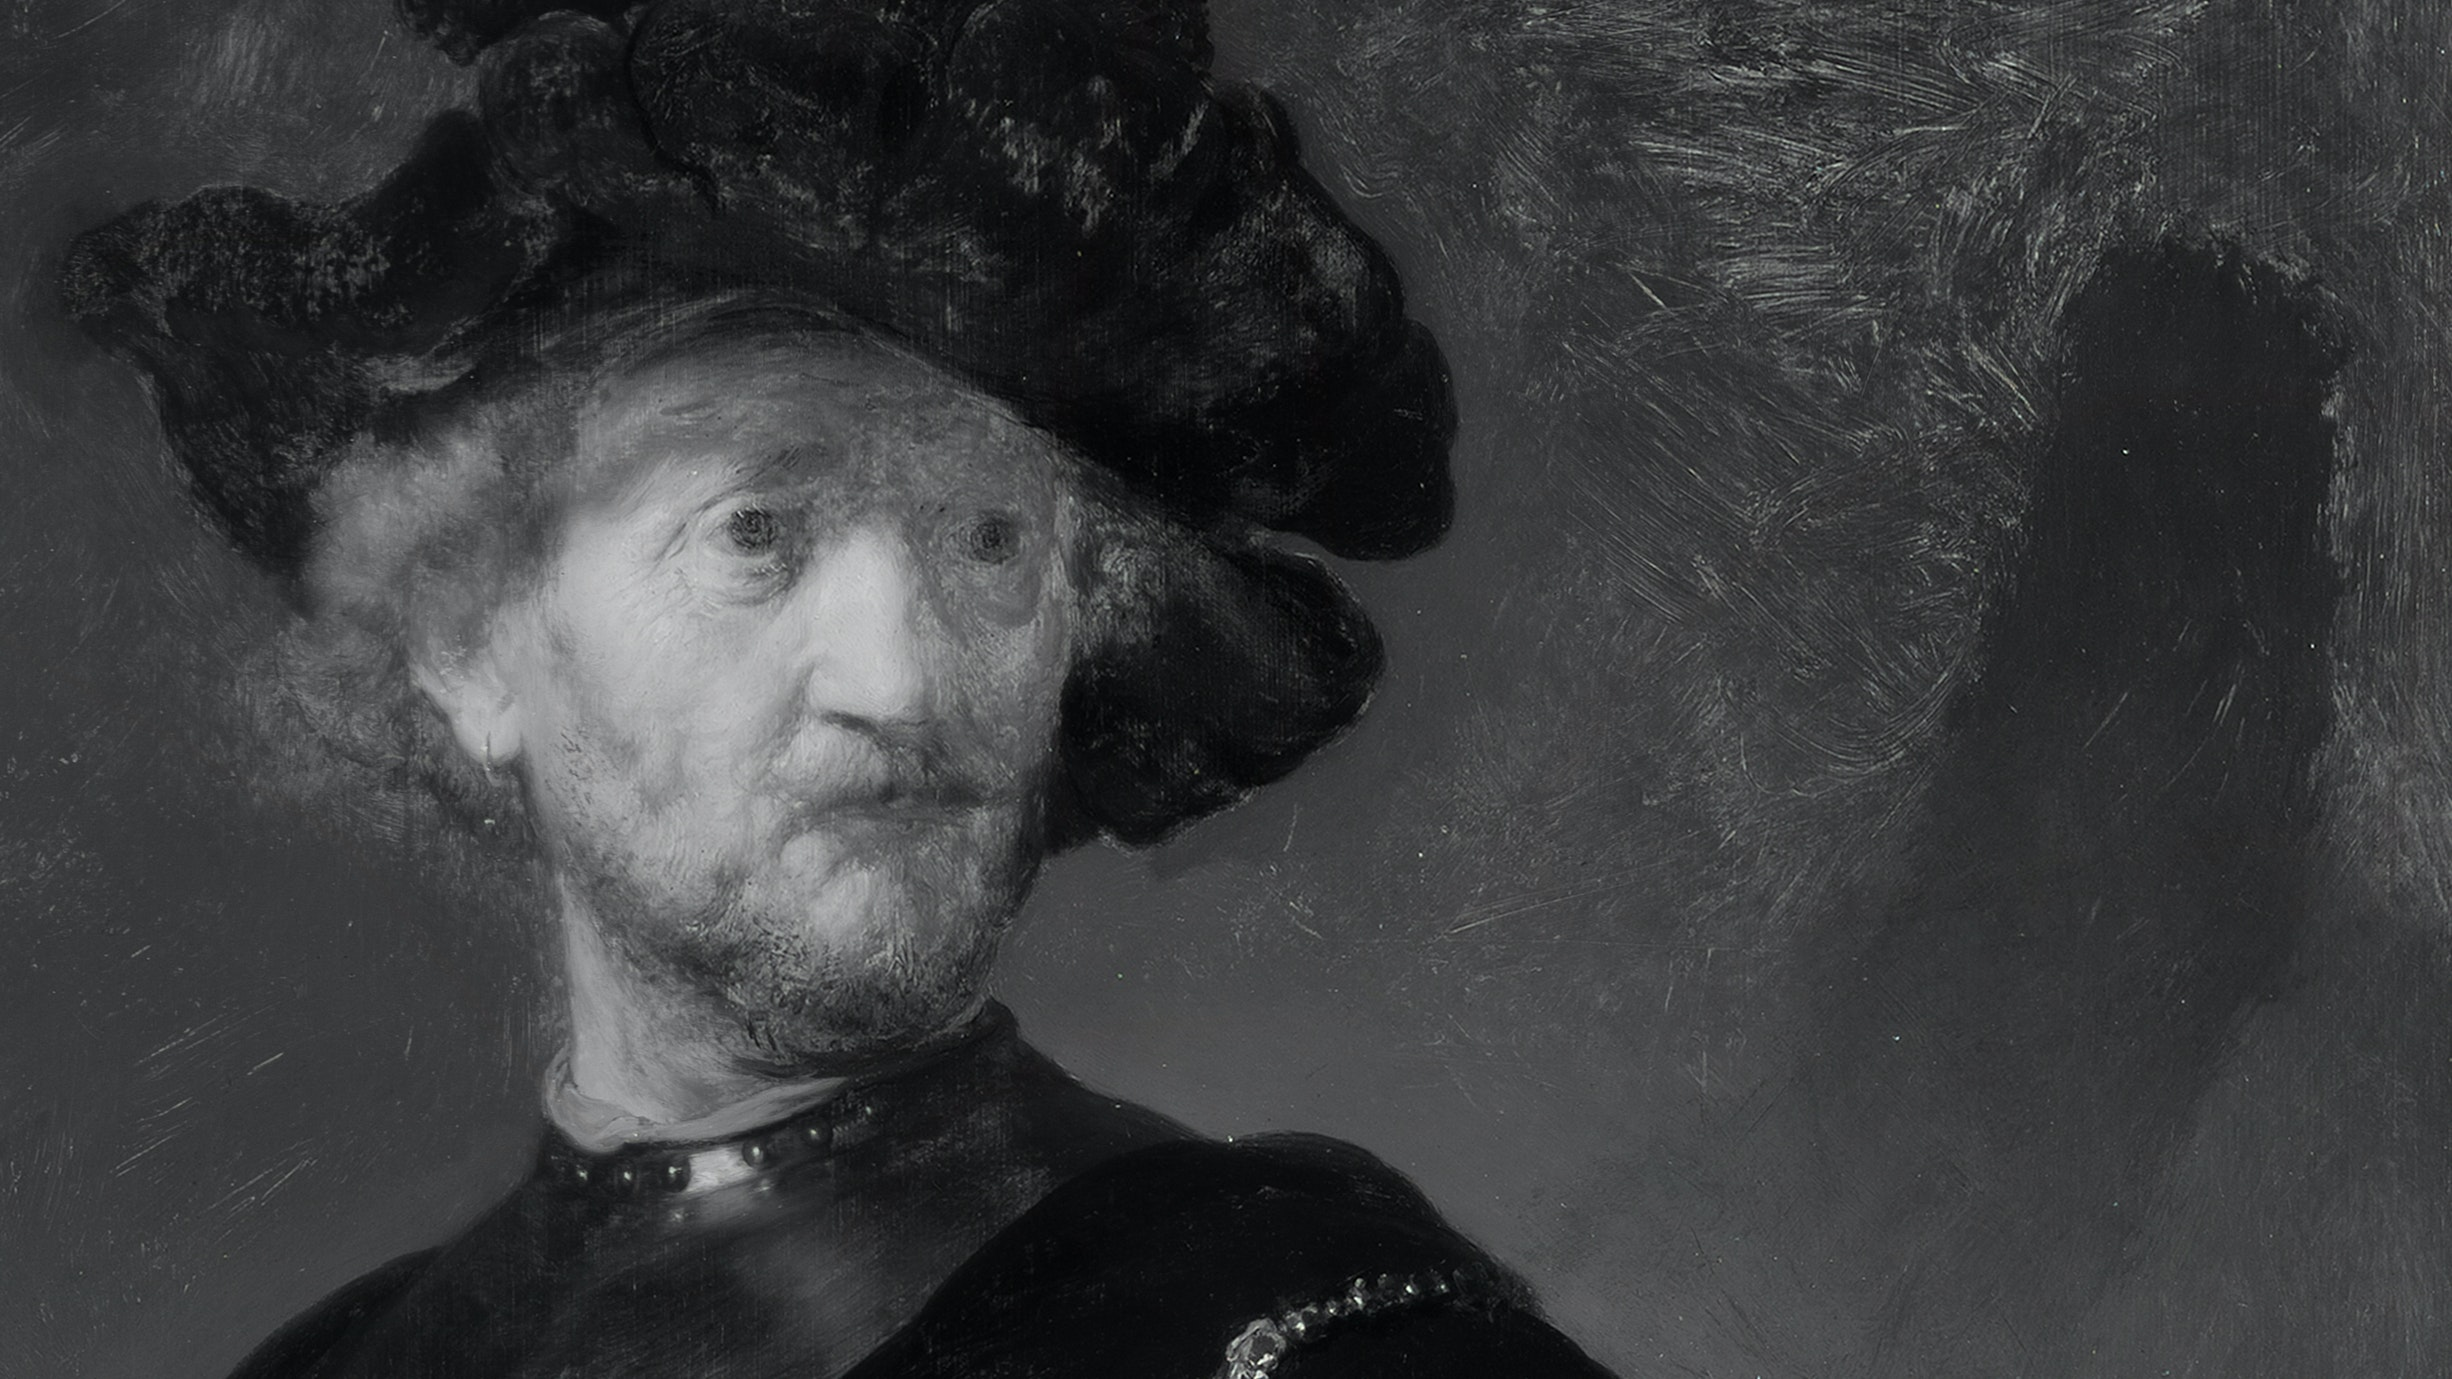 Infrared phtography of Rembrandt's Old Man with Gold Chain that show a hidden shadow on the wall behind the figure.